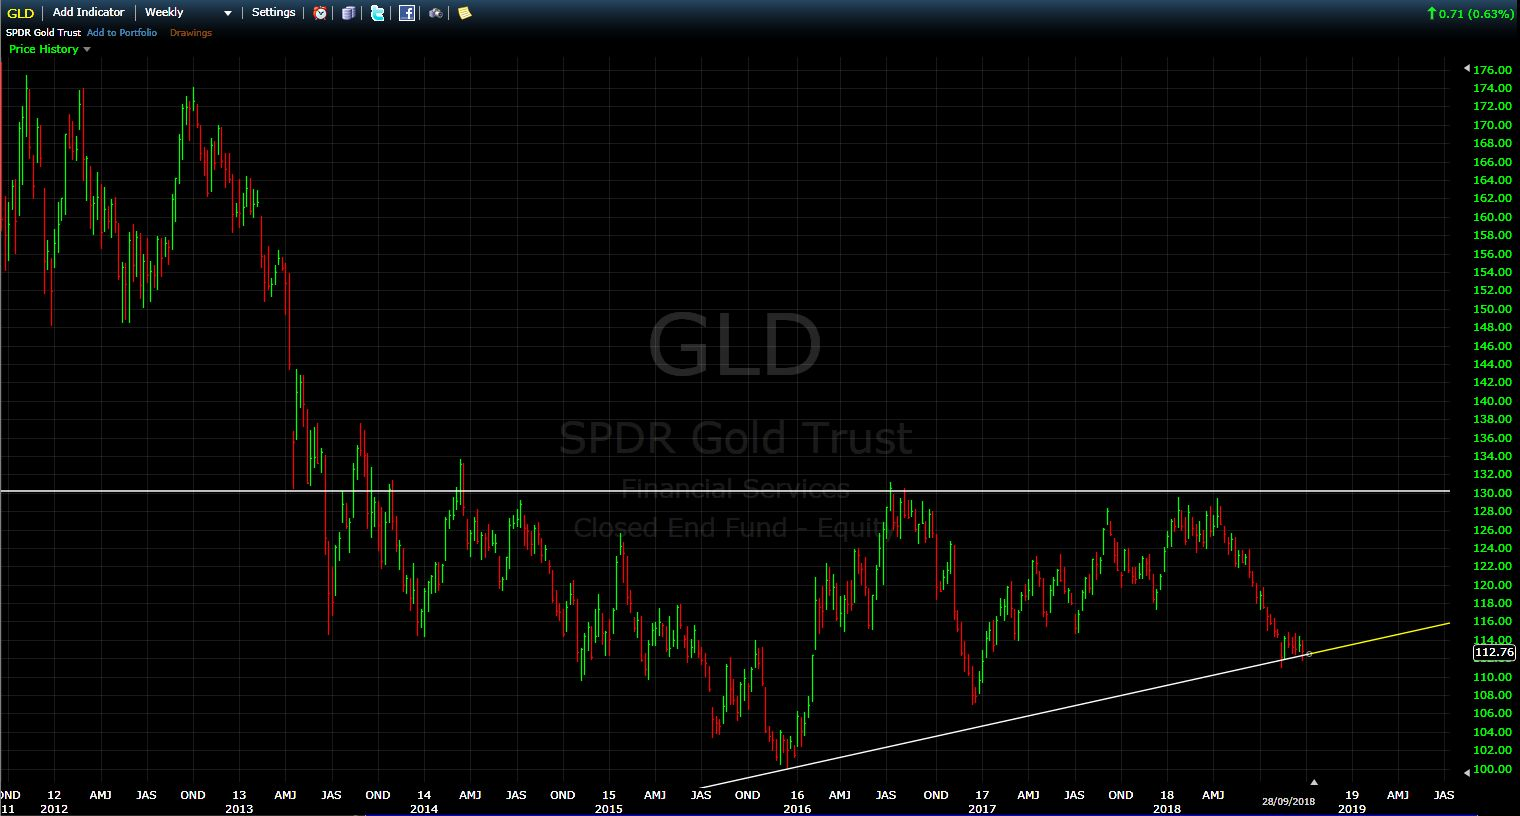 GLD WEEKLY Chart Screen Shot - September 2018